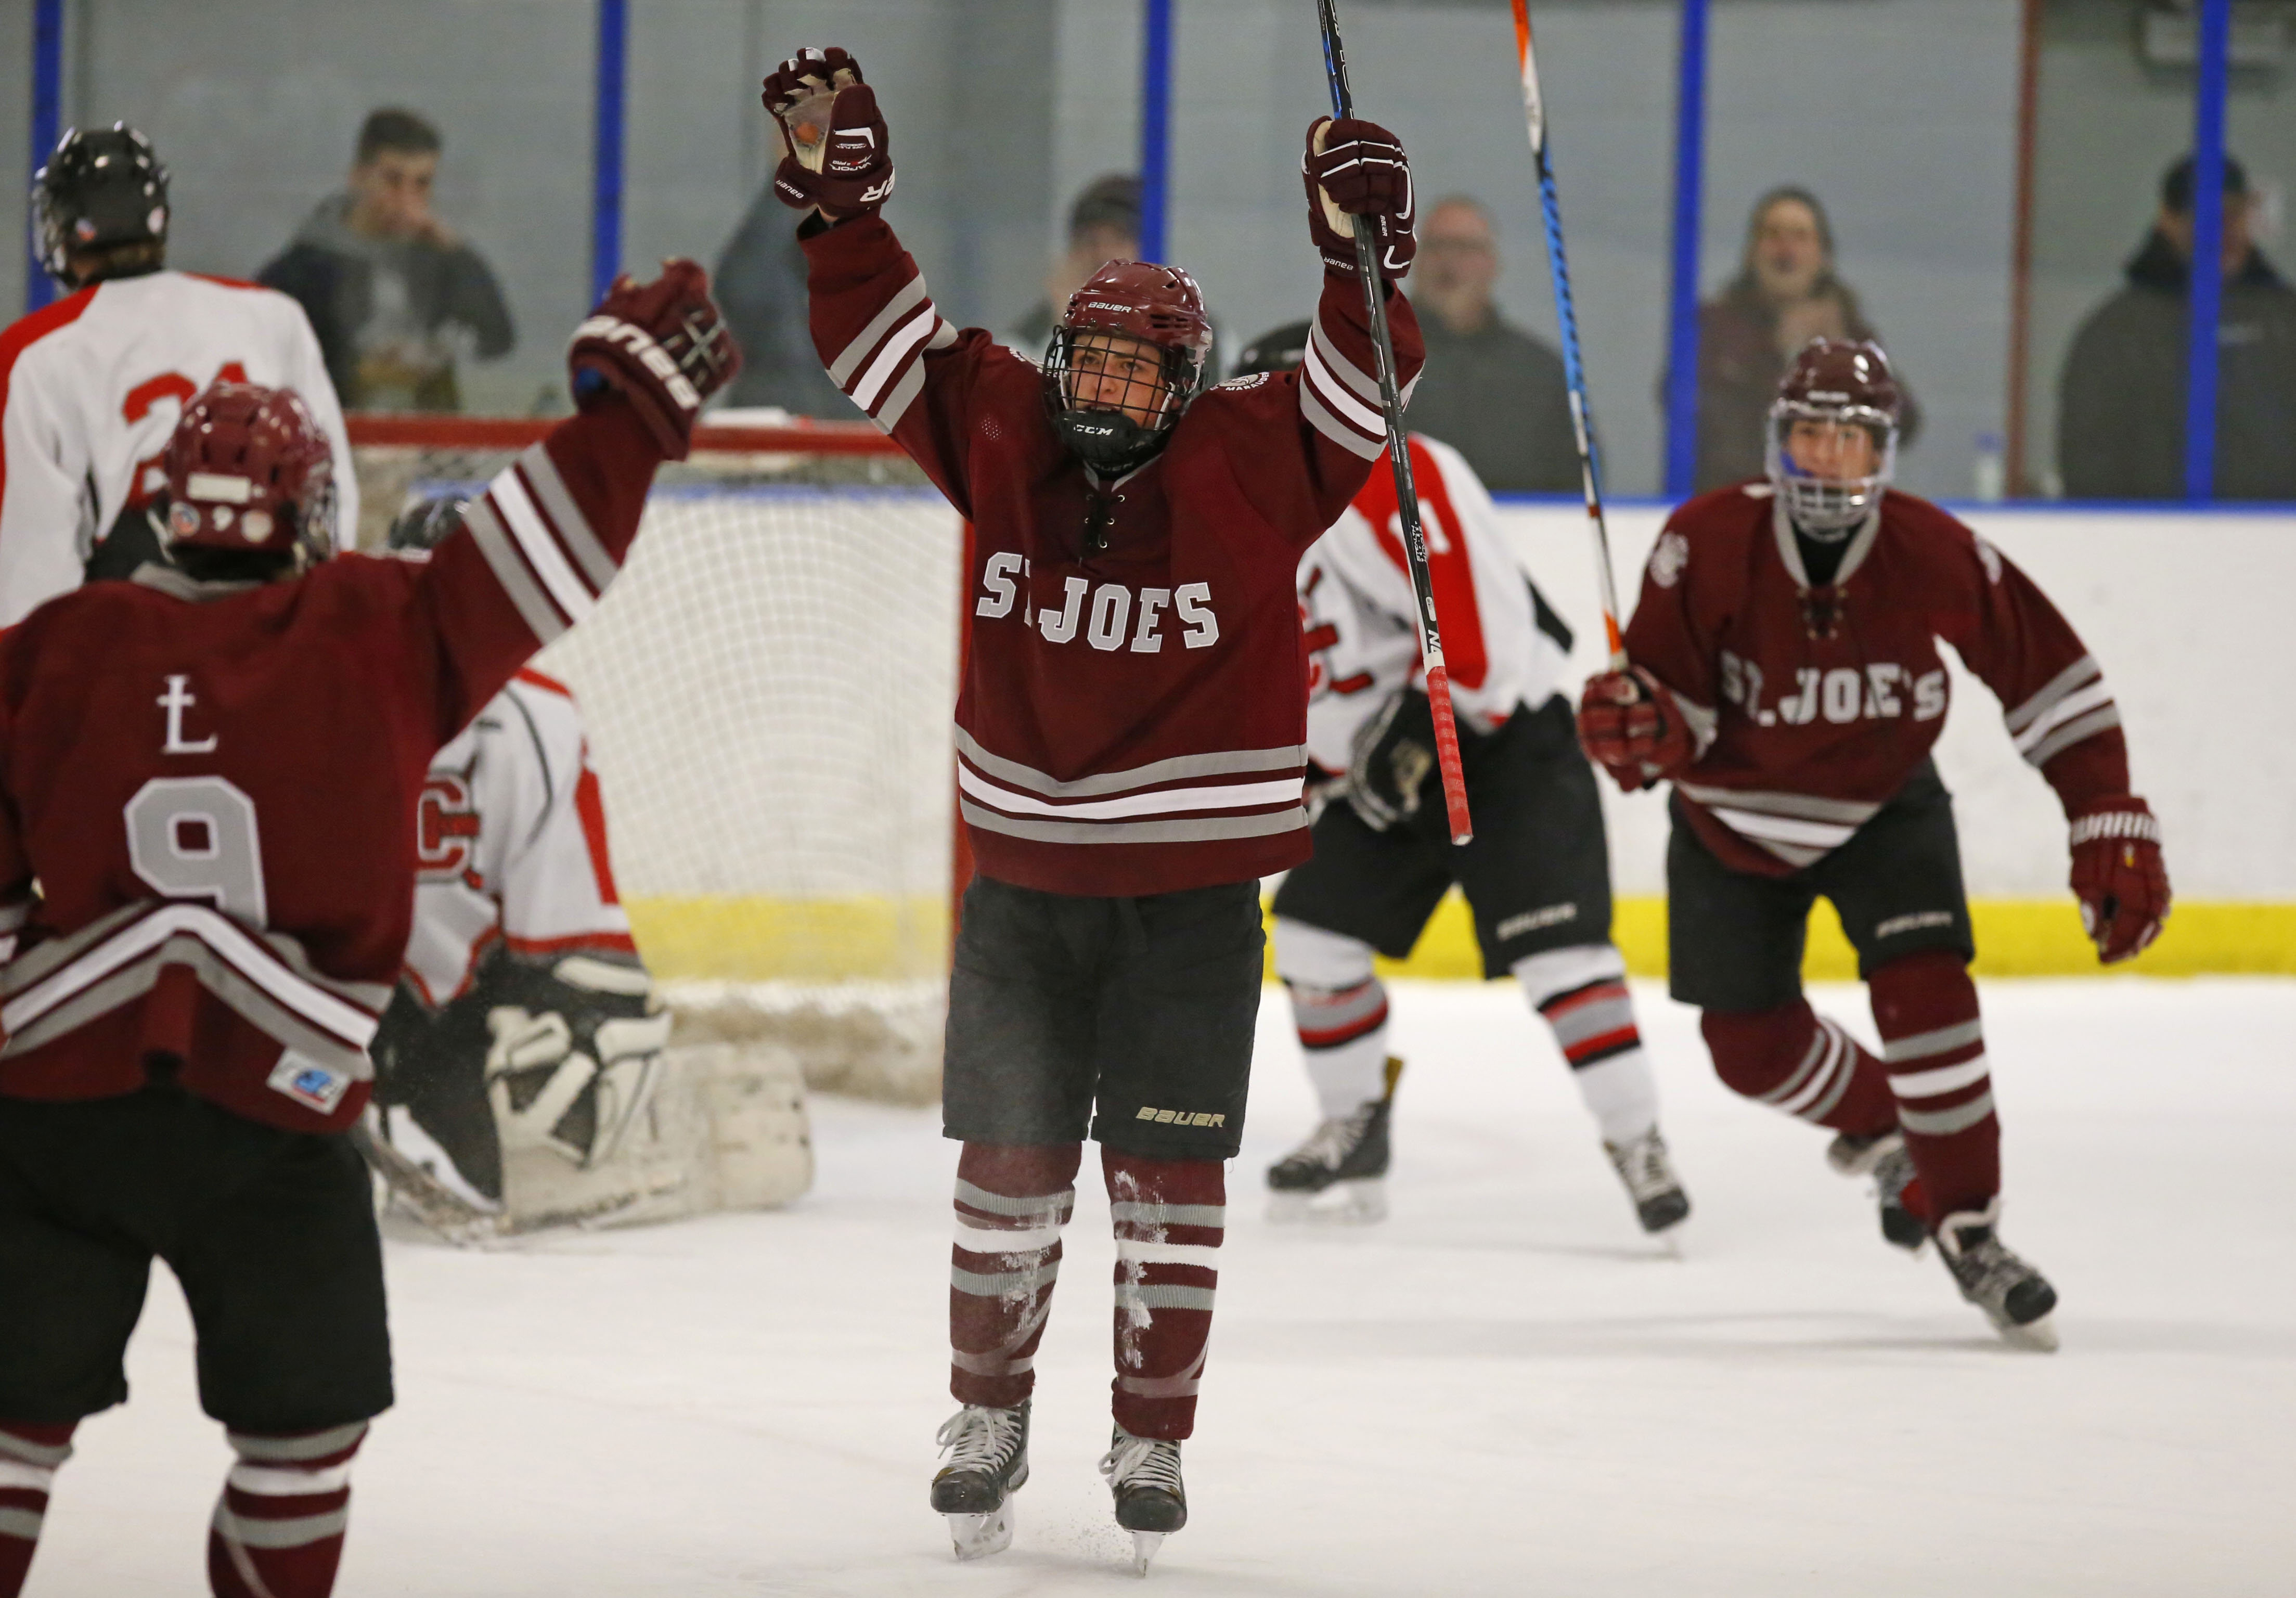 St. Joe's enters the Niagara Cup playoffs as the top seed among Catholic schools. (Harry Scull Jr./Buffalo News)